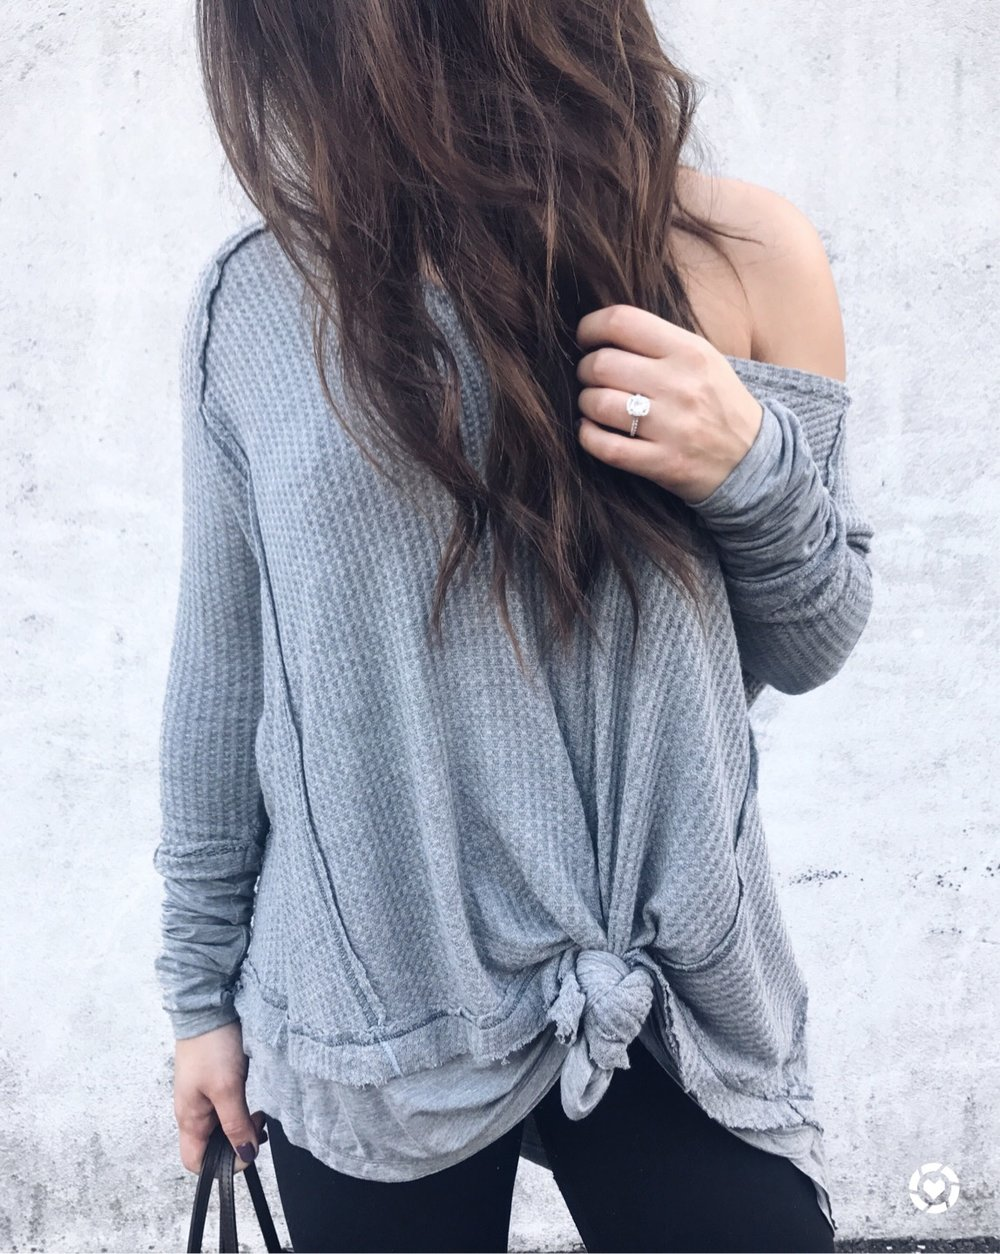 fall outfit idea / fall outfit inspiration / free people thermal / knotted tee / how to knot a thermal